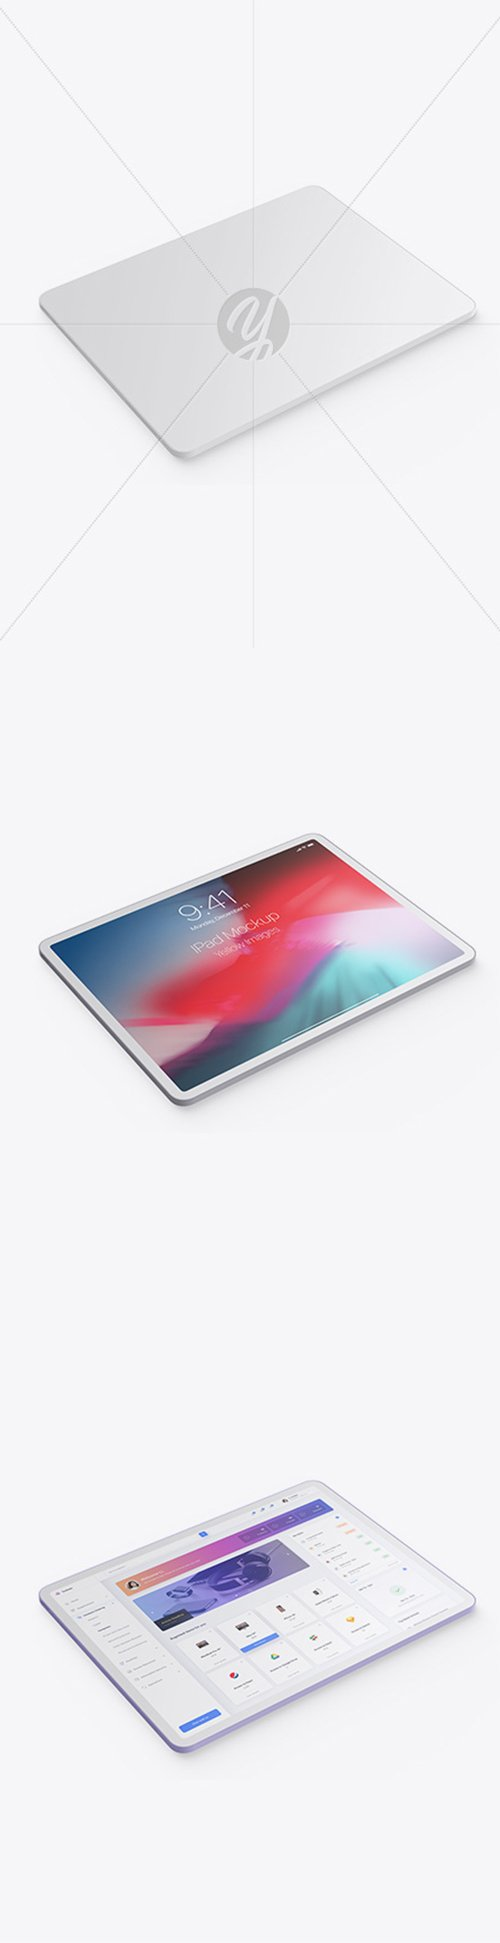 Clay Apple iPad Pro 2018 12.9 Mockup 44126 TIF